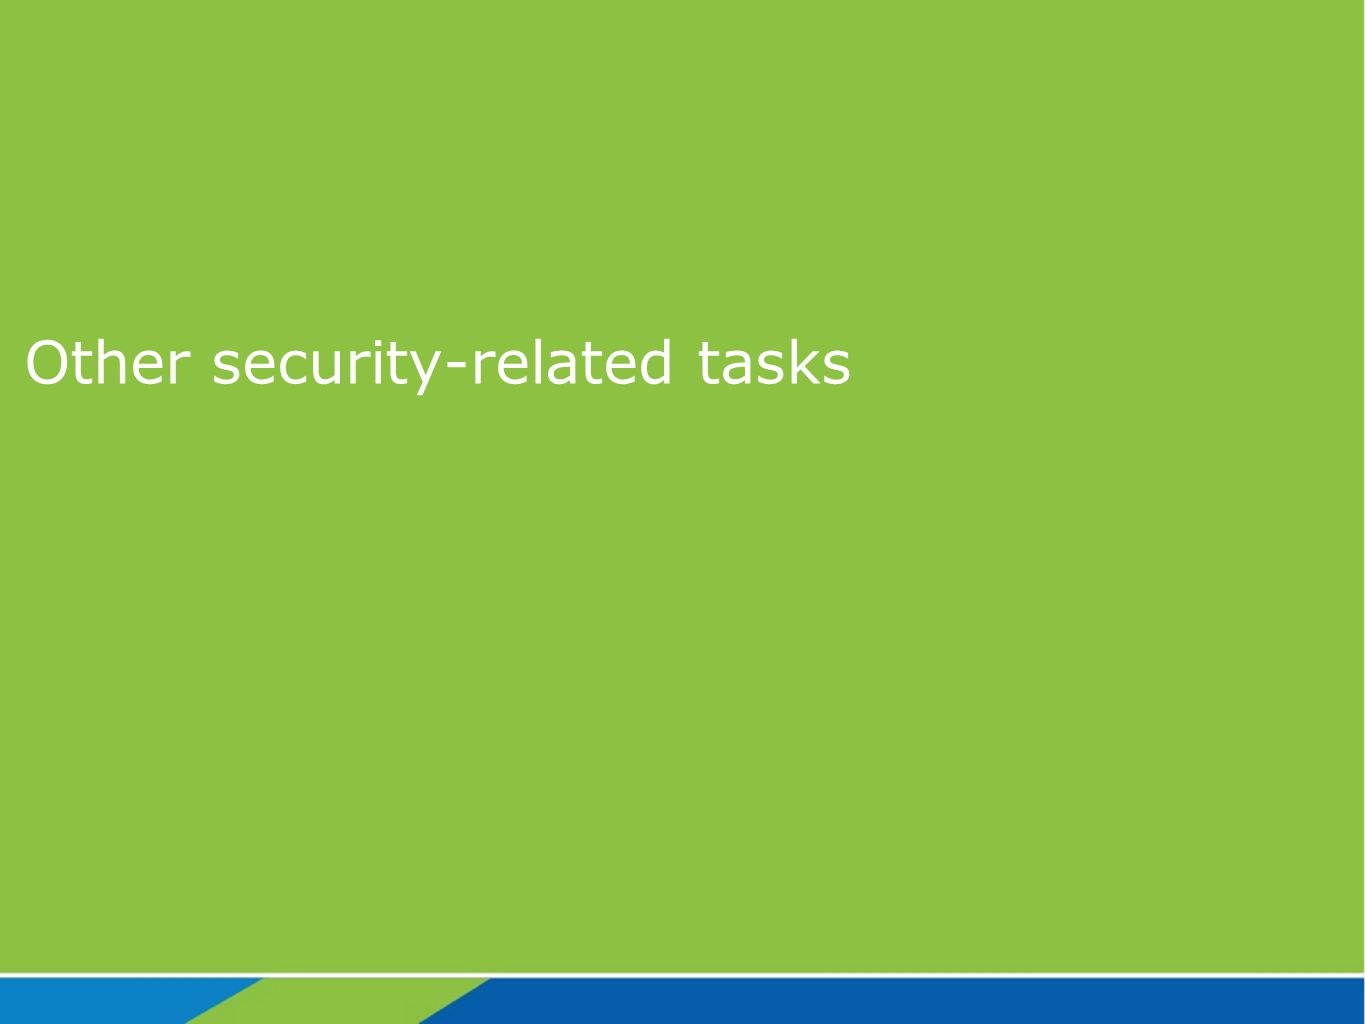 Other security-related tasks